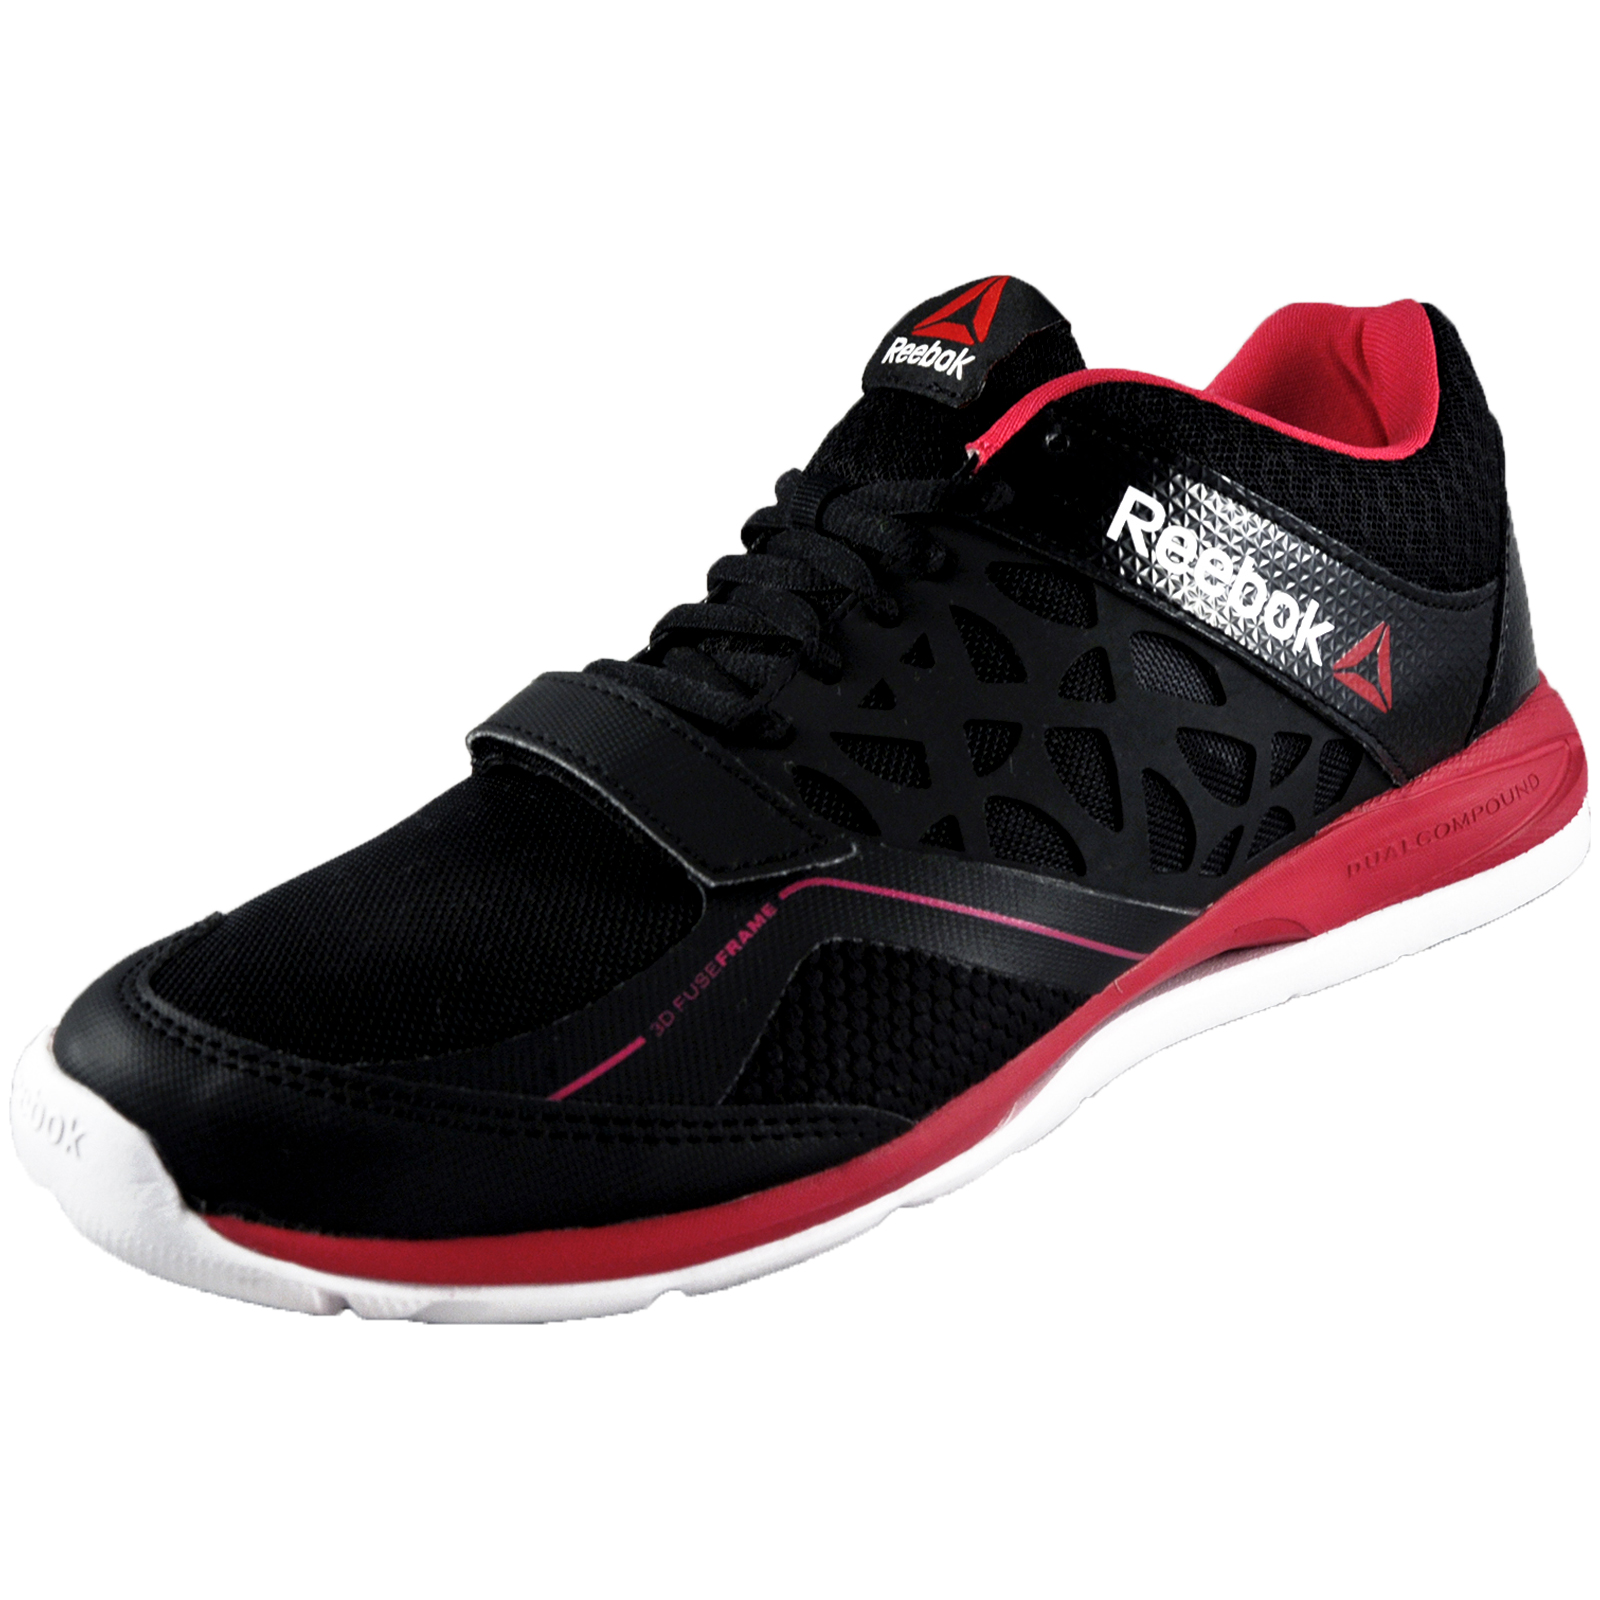 Reebok Womens Studio Choice Fitness Workout Gym Trainers Black AUTHENTIC EBay